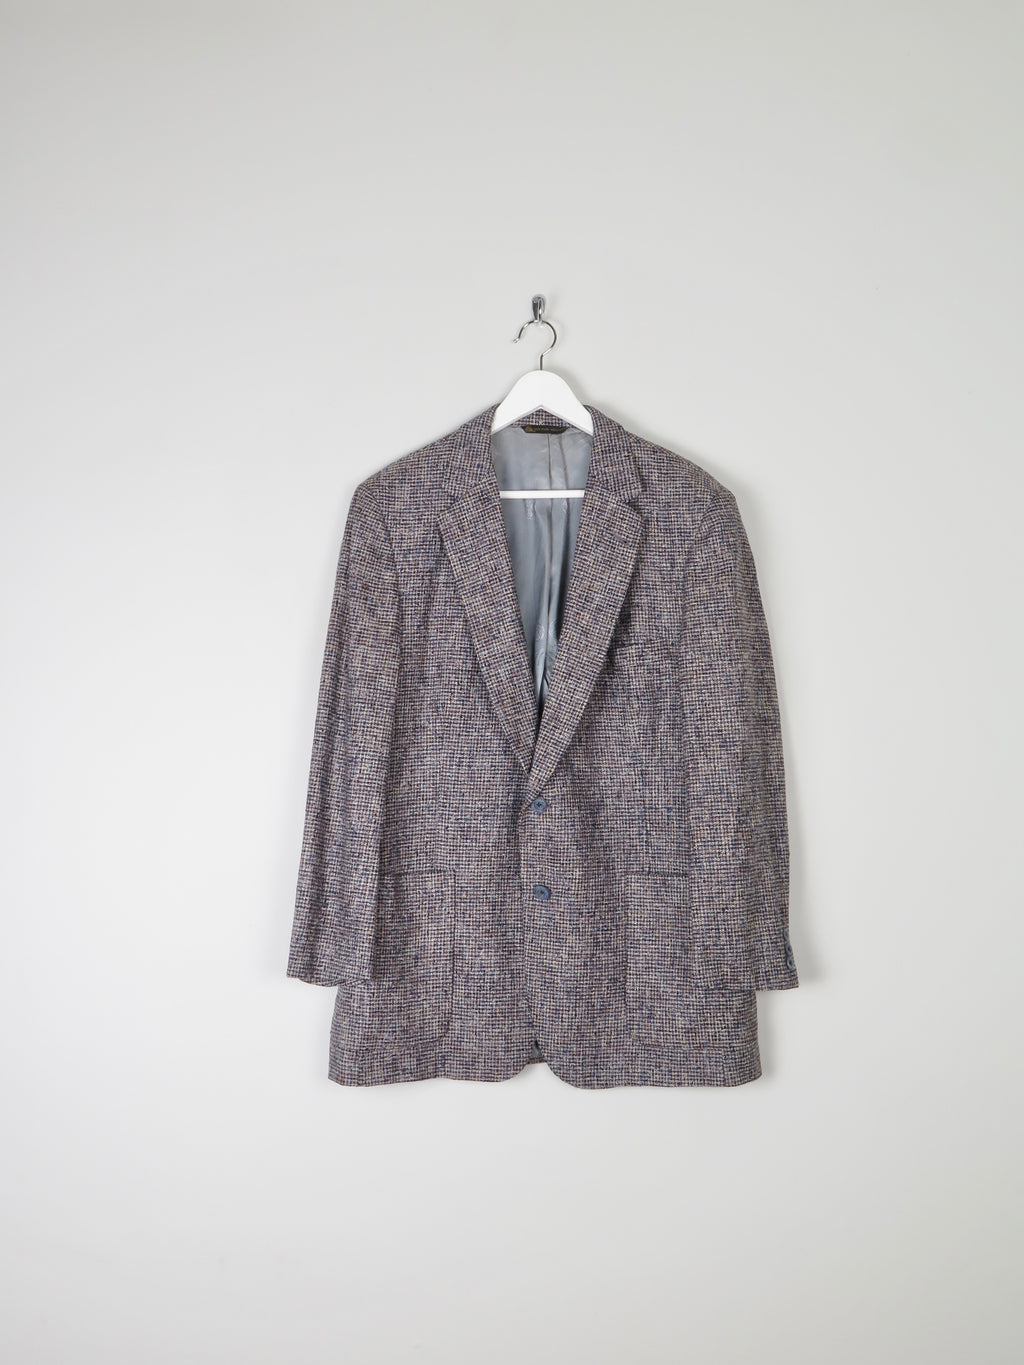 Mens Beige/Navy/Black Raw Affect Tweed Jacket 44""